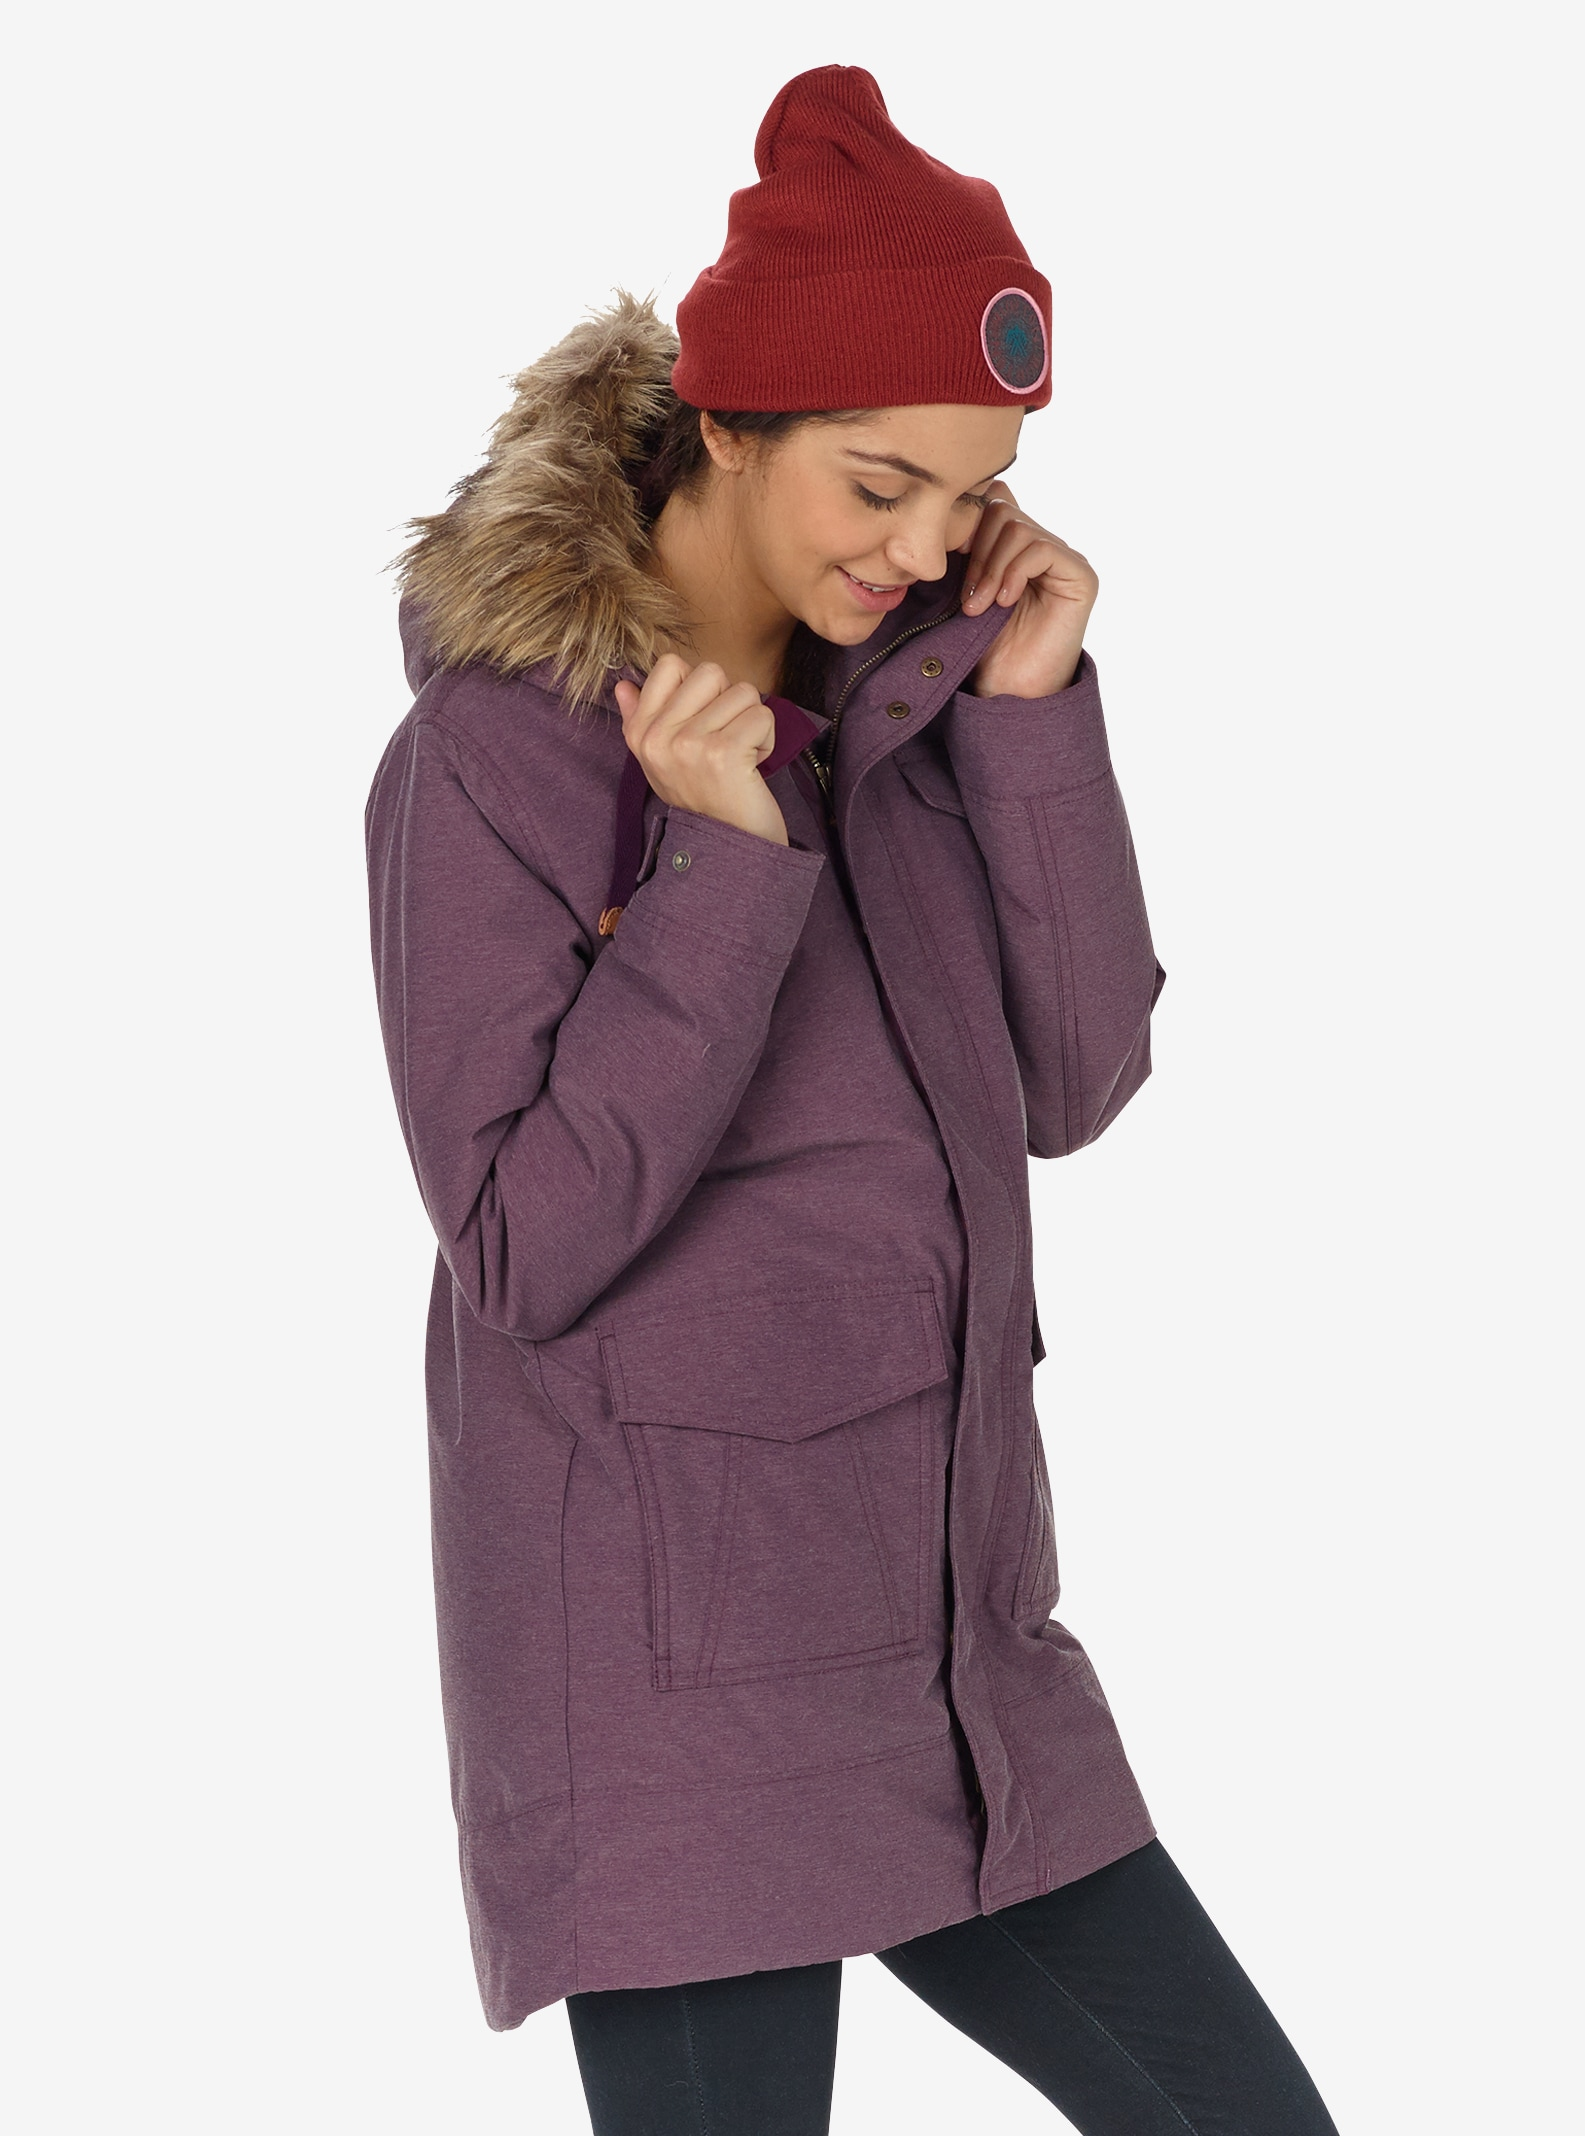 Women's Burton Merriland Jacket shown in Starling Heather